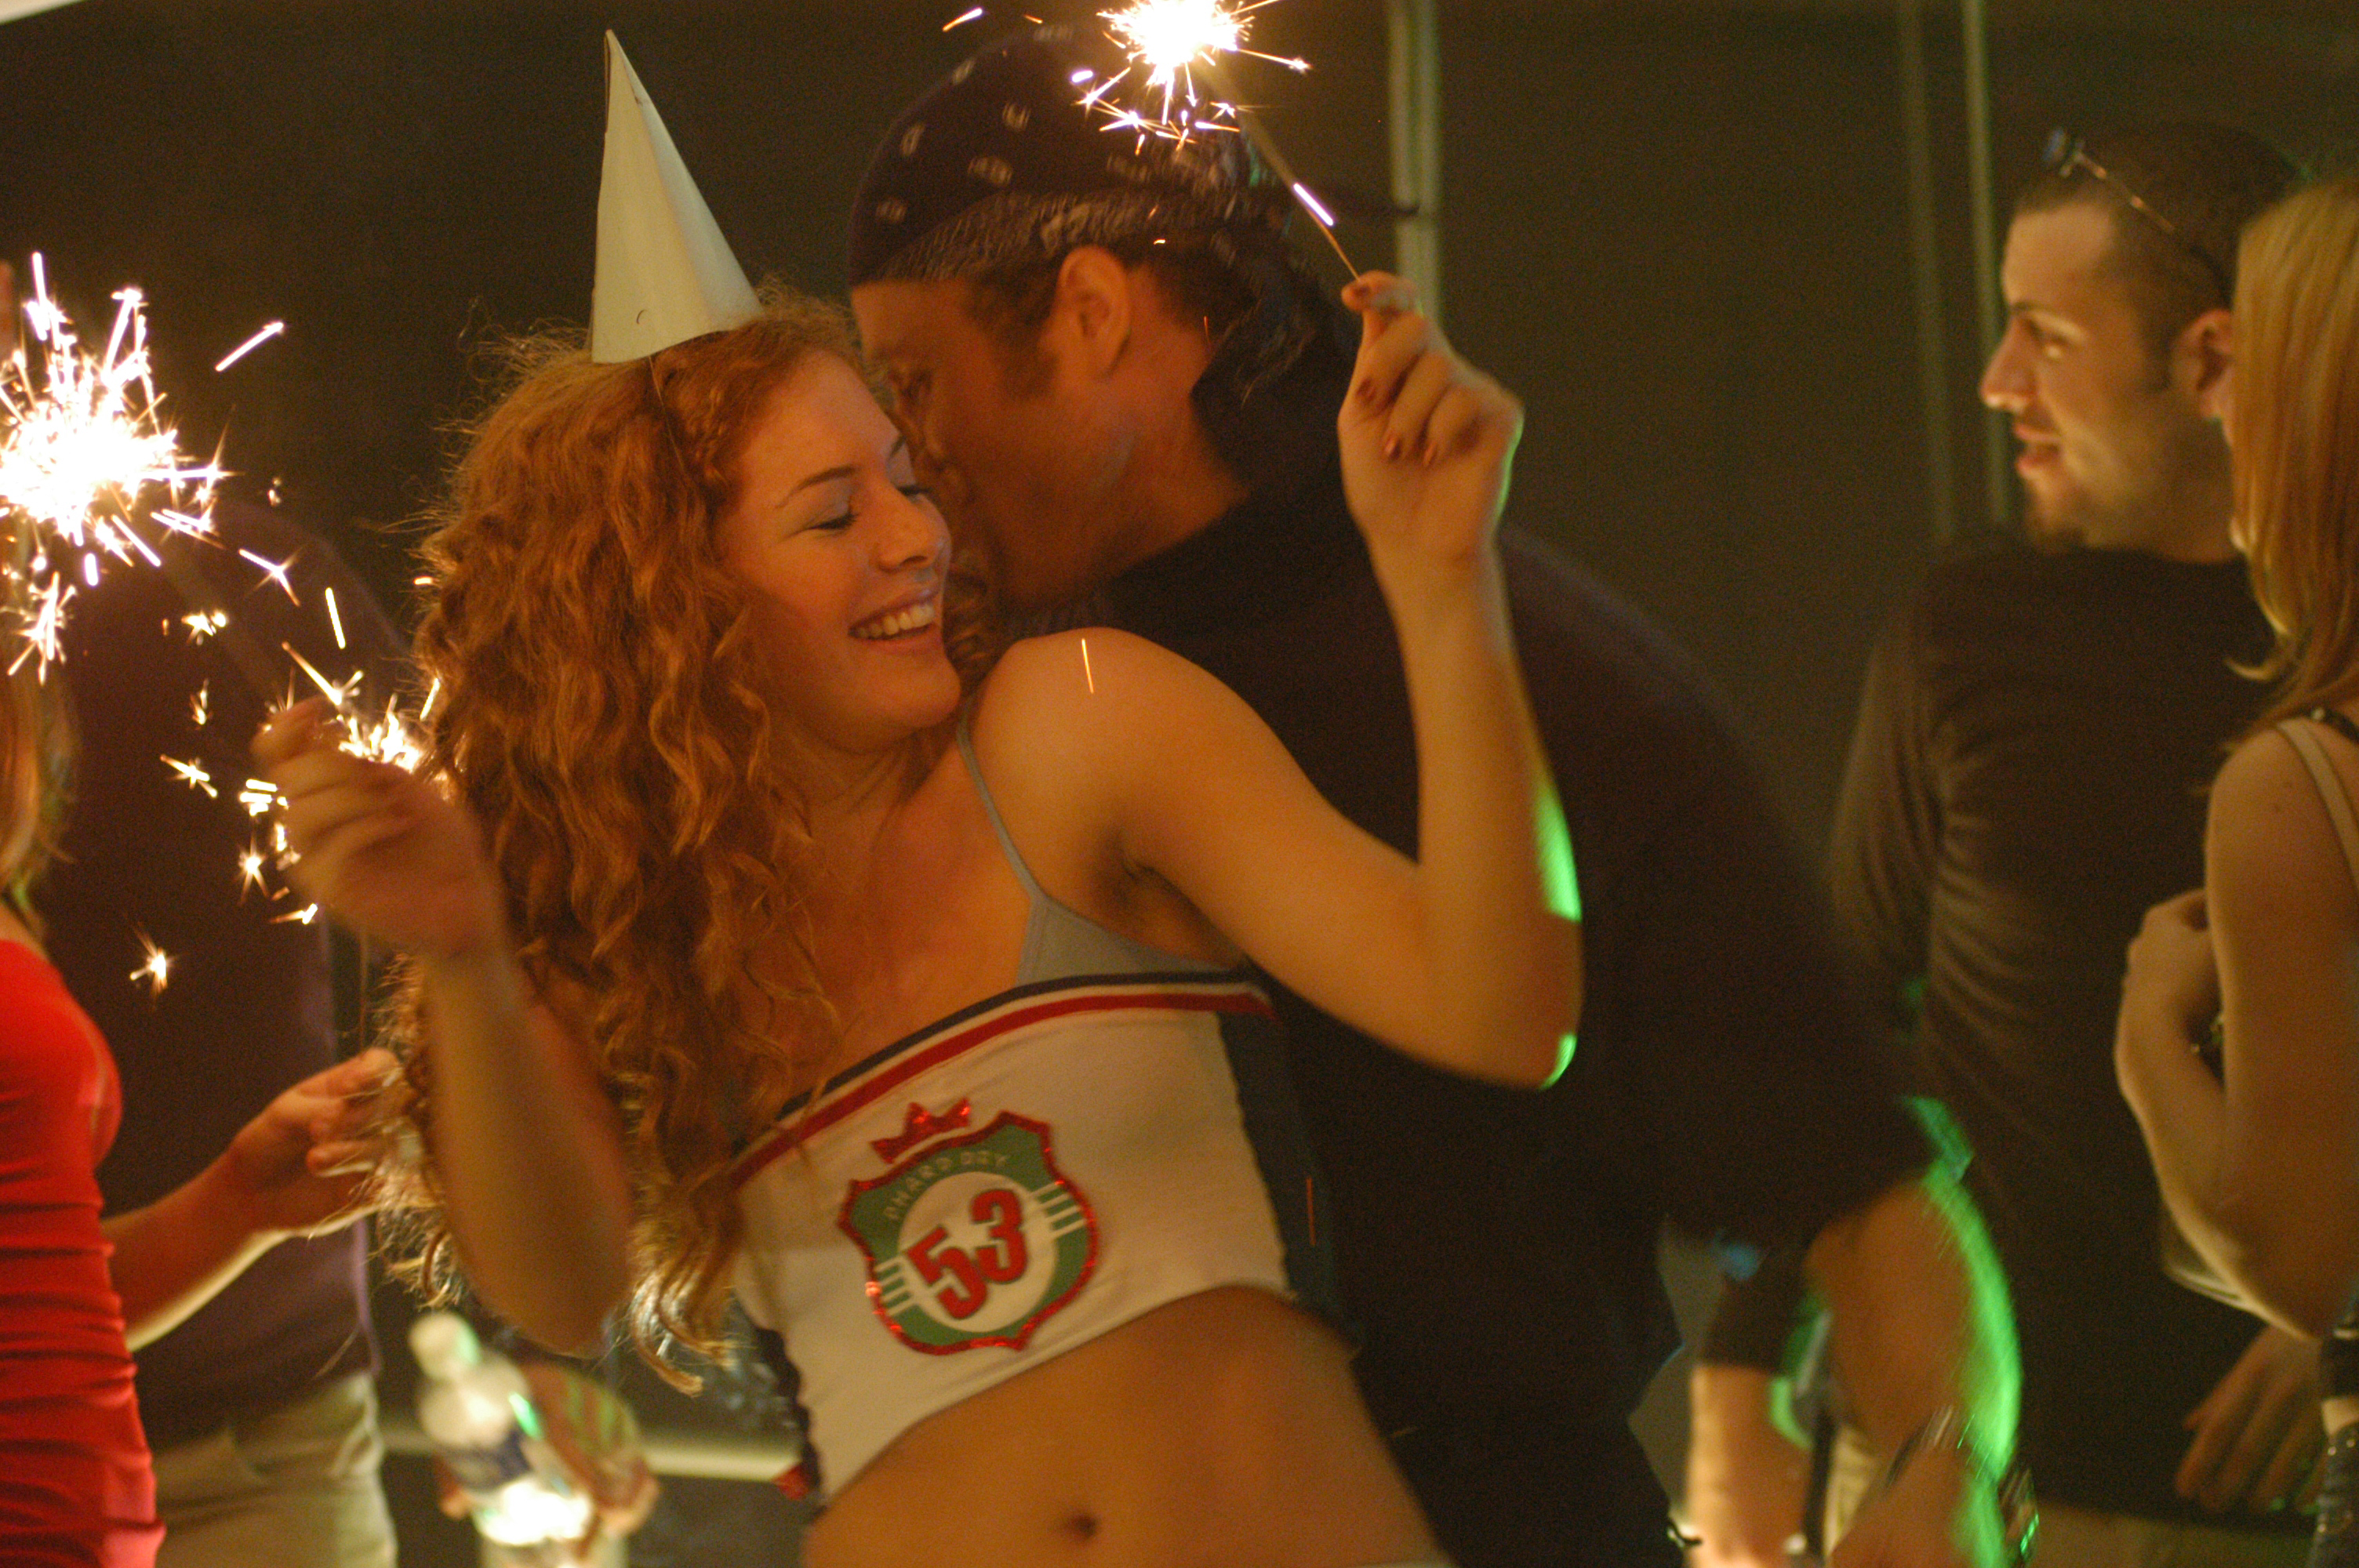 Pure - Actress Rachel Lefevre on the set 2003